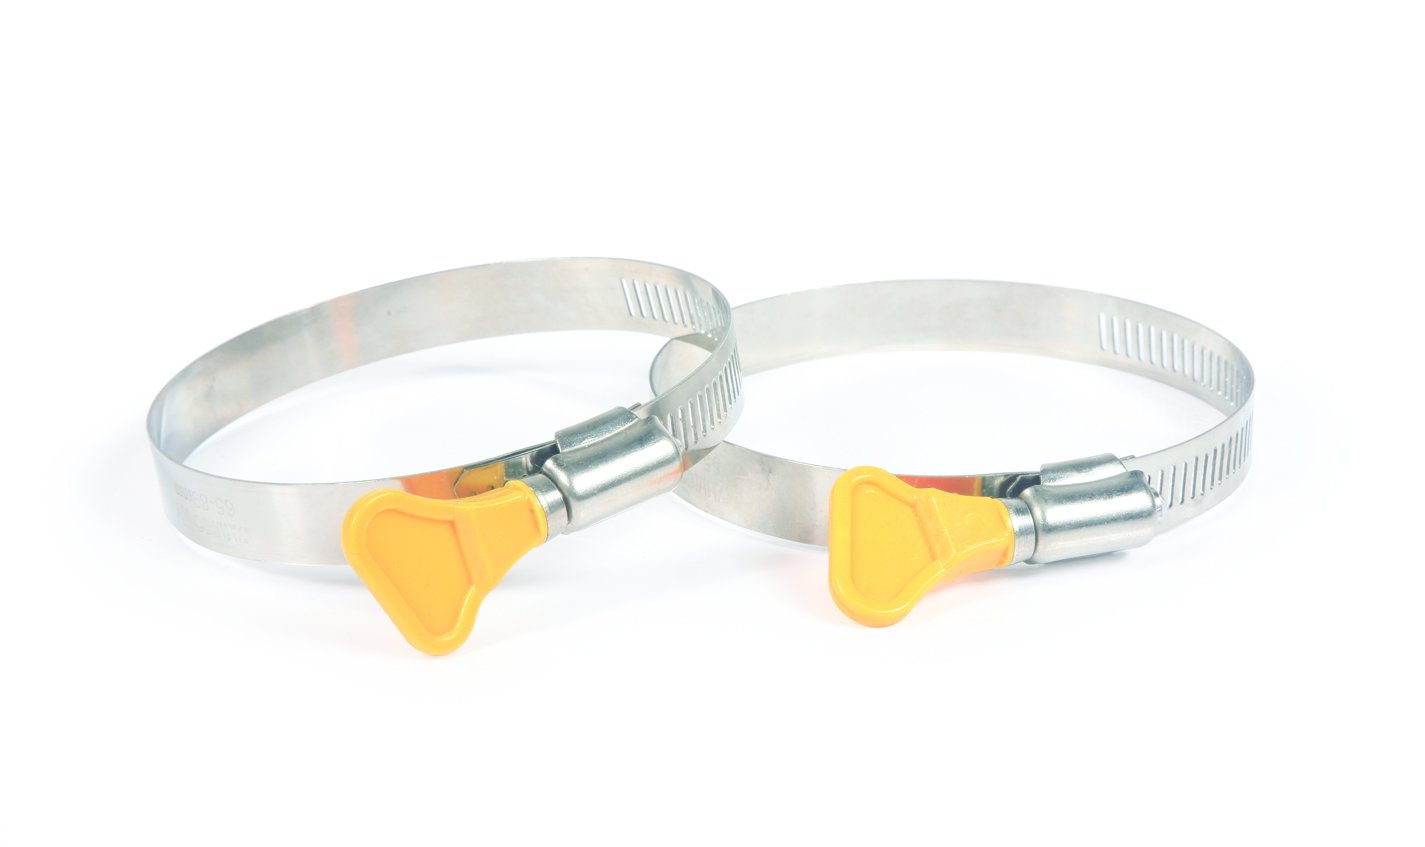 Camco 39553 RV Sewer Hose 3'' Twist-It Clamps - Pack of 2